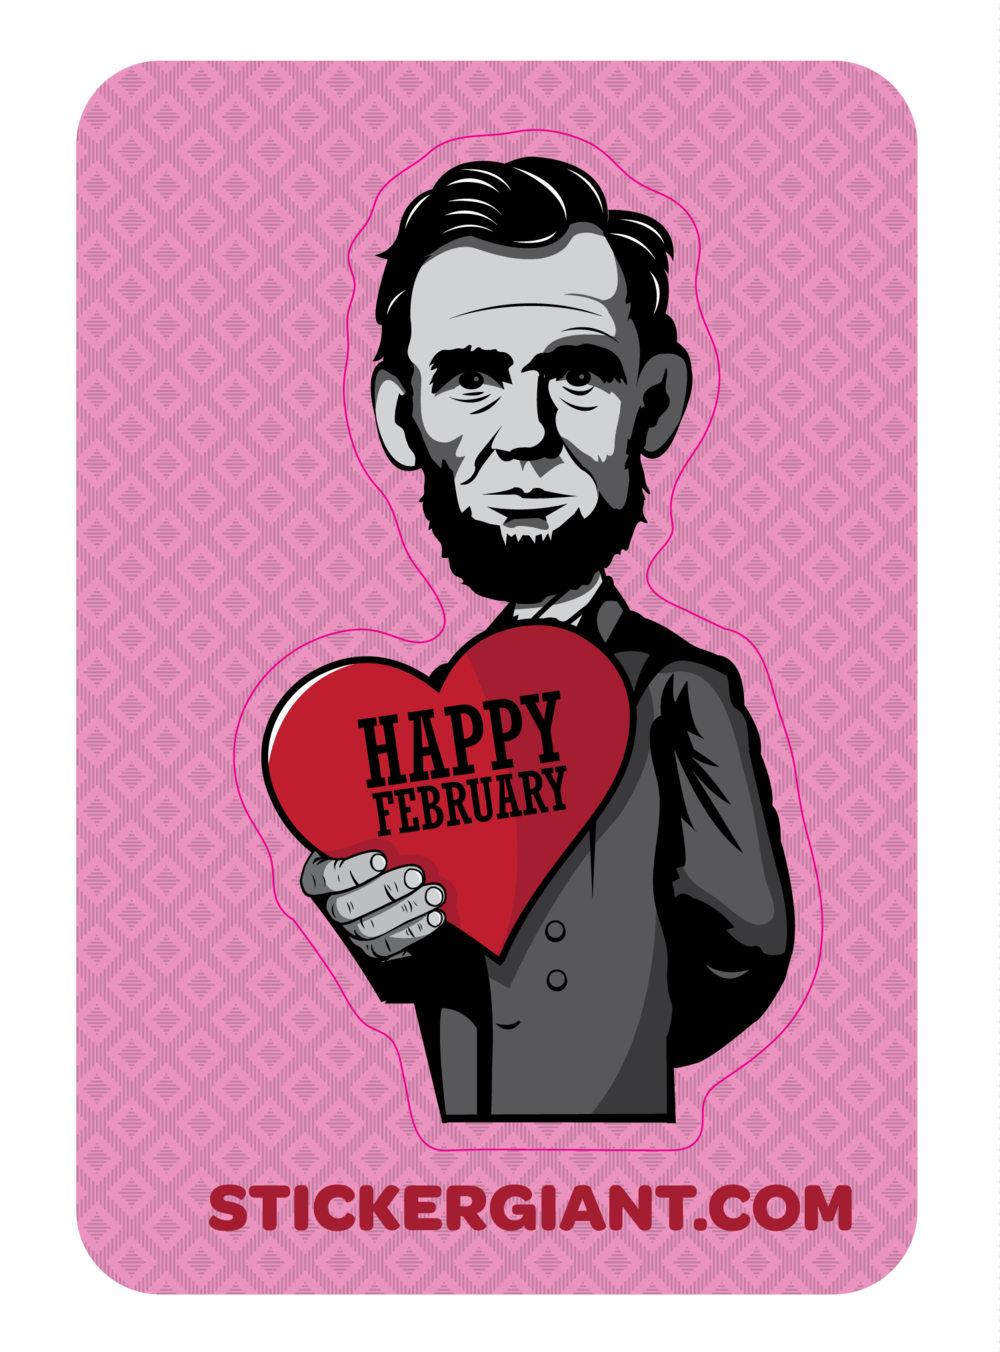 Custom Abe Lincoln sticker design for  StickerGiant